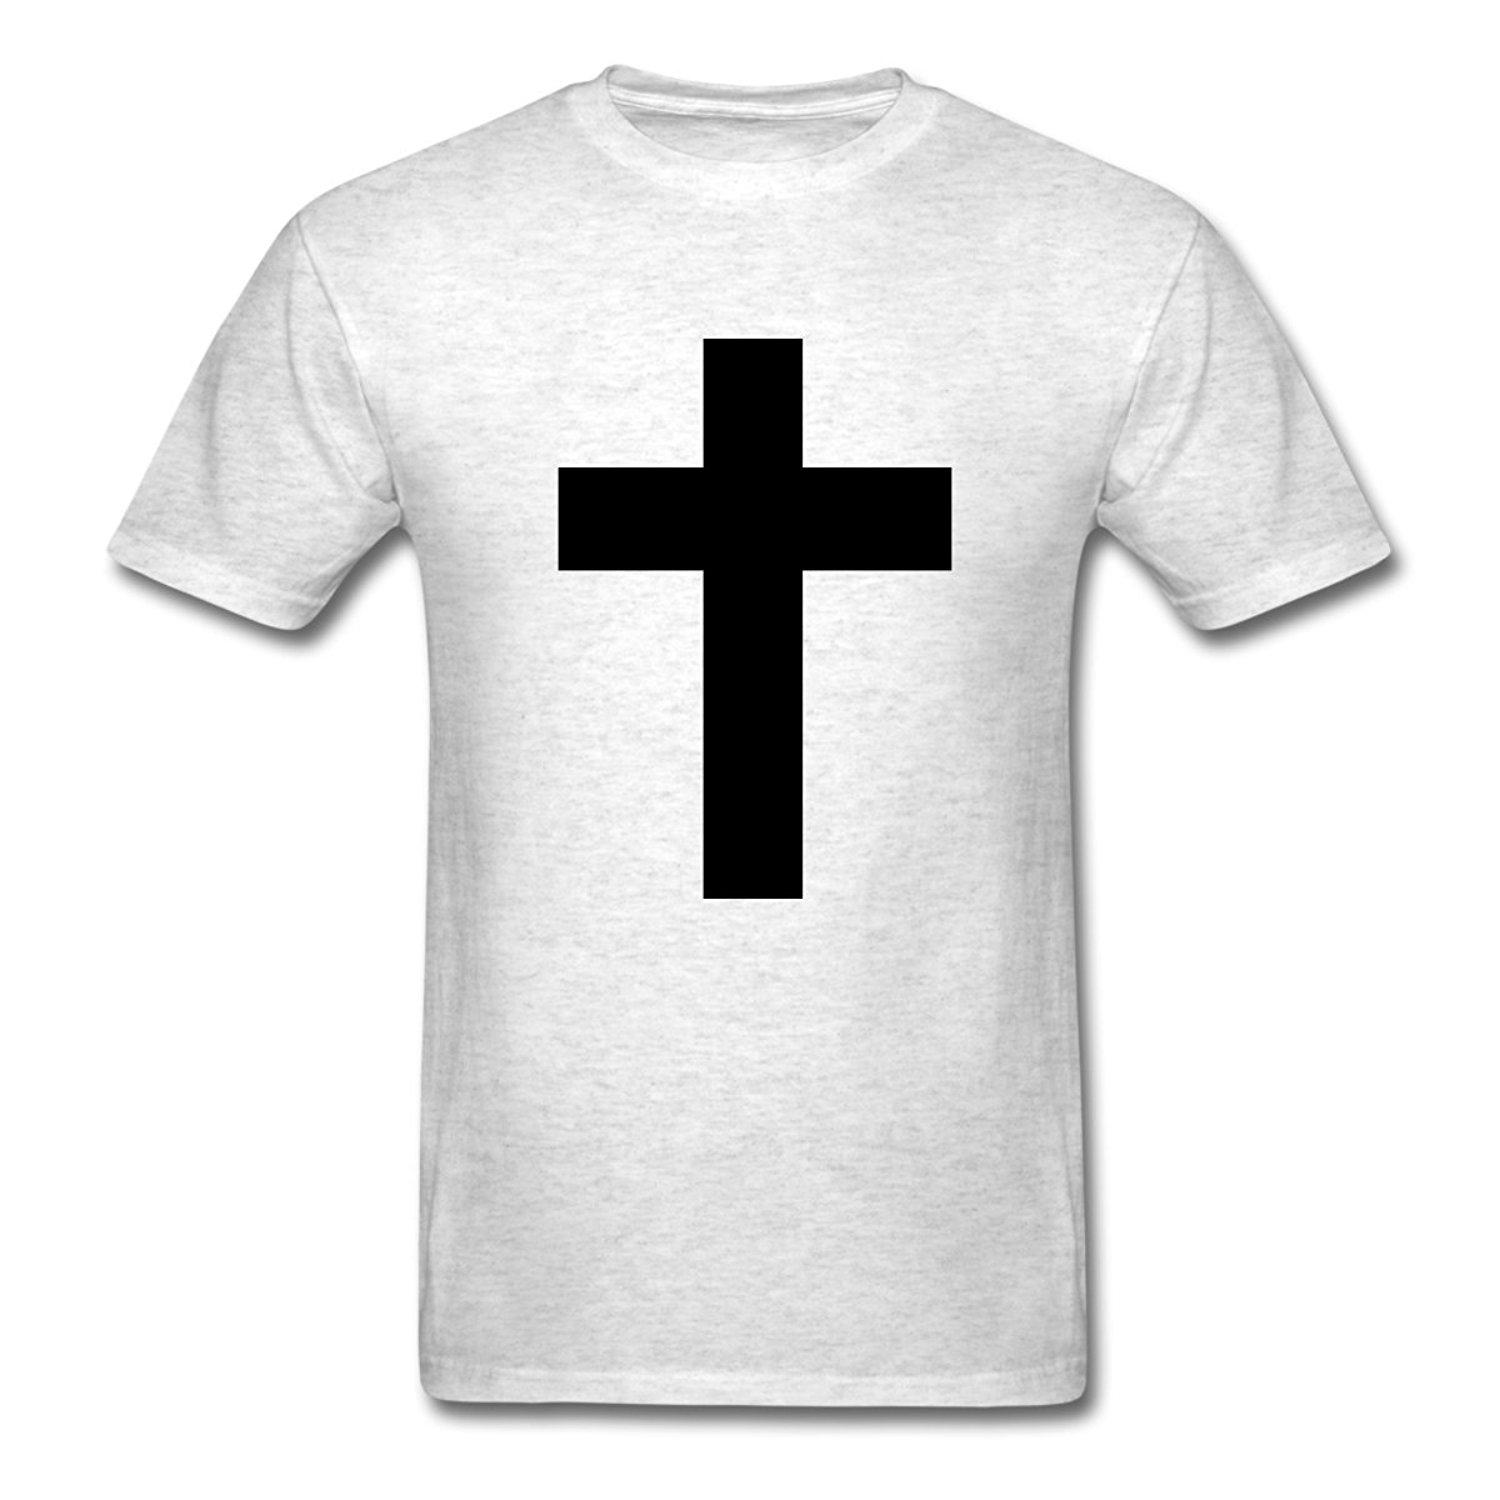 2017 New Fashion Spreadshirt MenS White The Cross Jesus T Shirt 100 Cotton Male O Neck Short Tops Tee Shop For Shirts